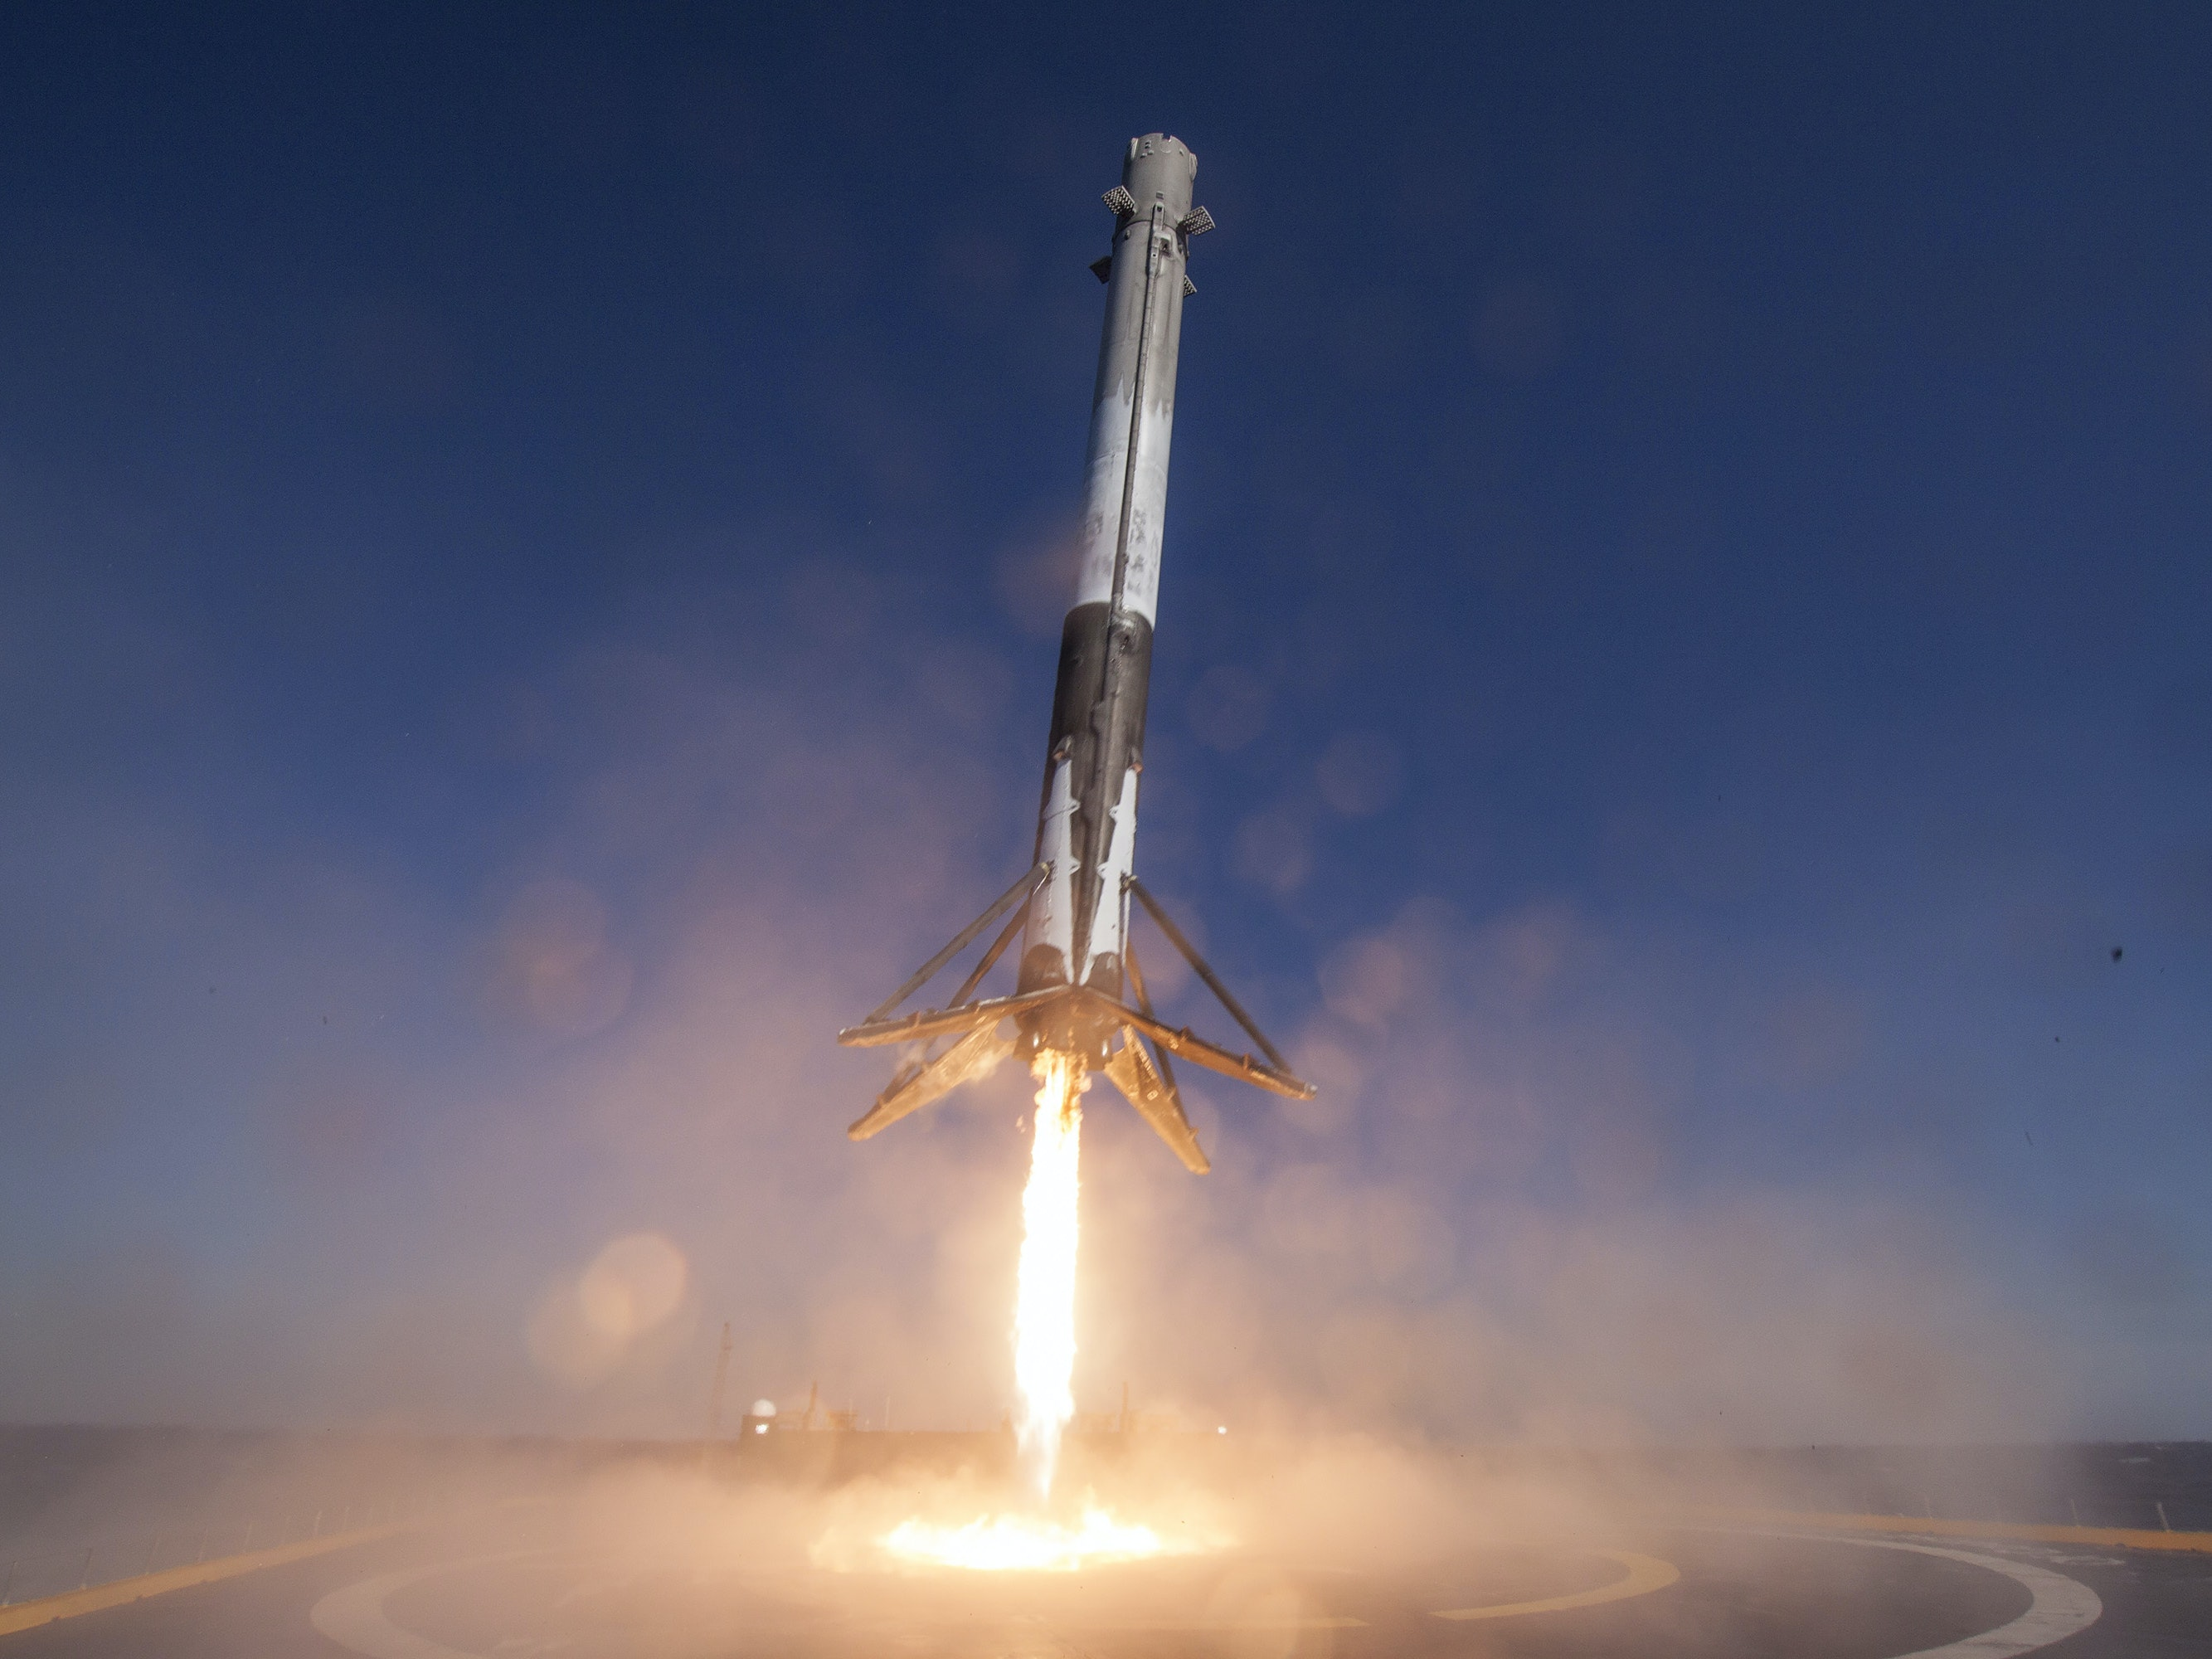 SpaceX Isn't Even Trying to Land Its Next Falcon 9 Rocket